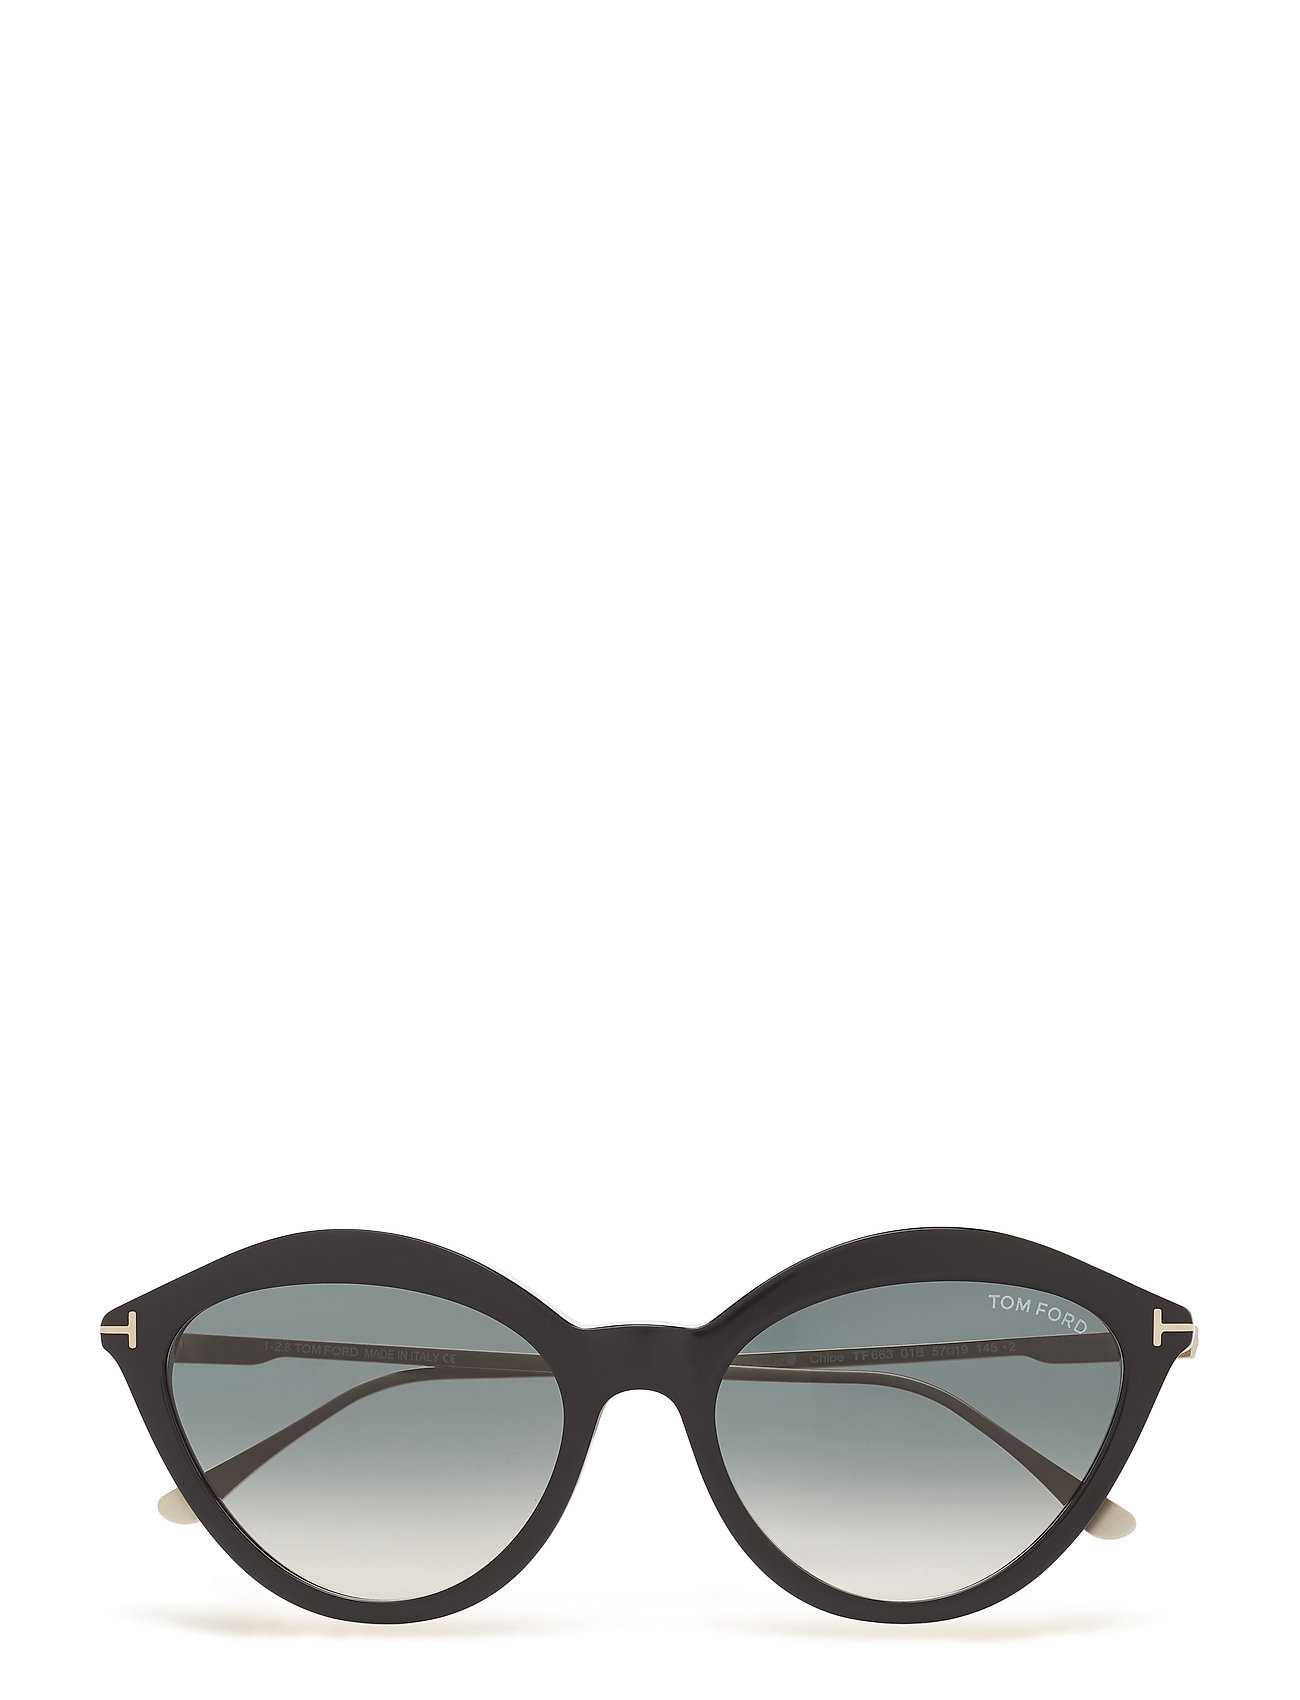 TOM FORD Tom Ford Chloe Sonnenbrille Schwarz TOM FORD SUNGLASSES